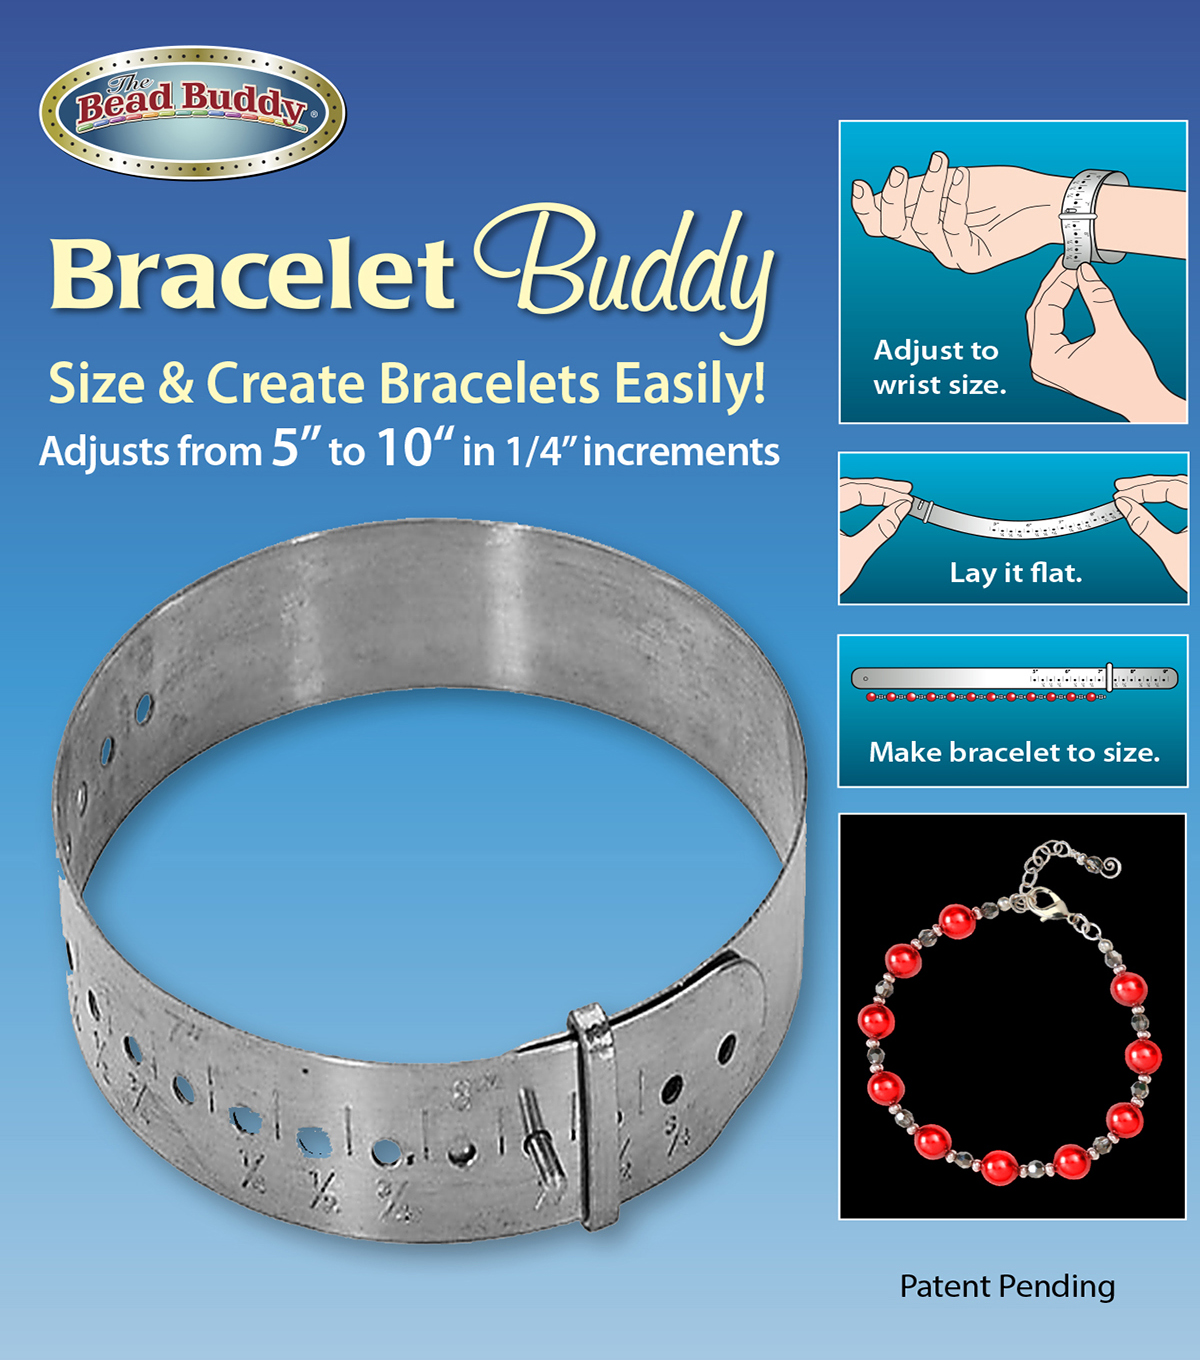 The Bead Buddy Bracelet Buddy Belt